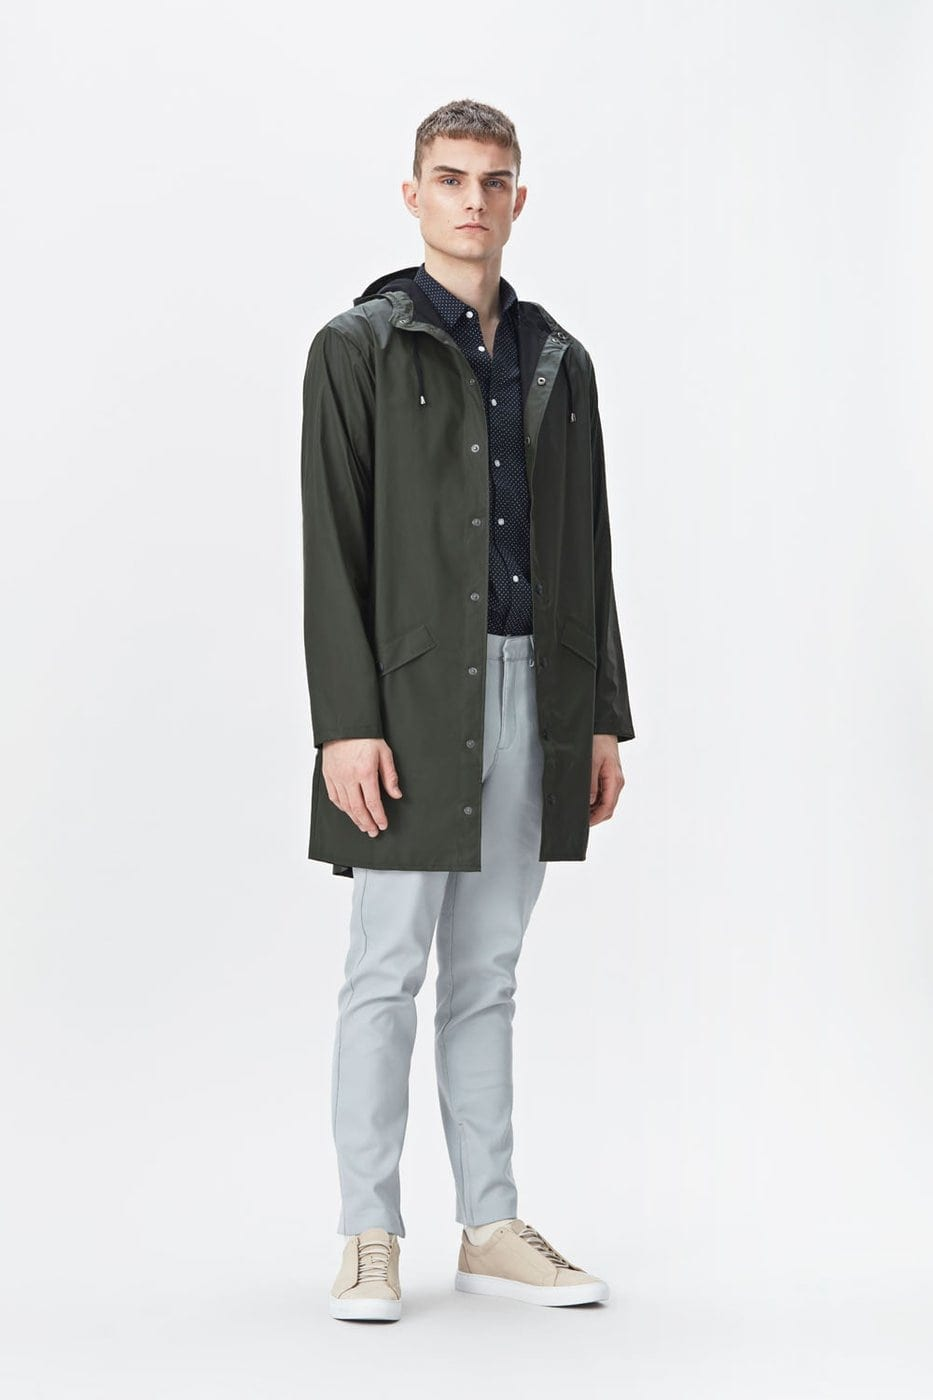 https://www.rains.com/collections/mens-rainwear/products/long-jacket-male?variant=21506975809